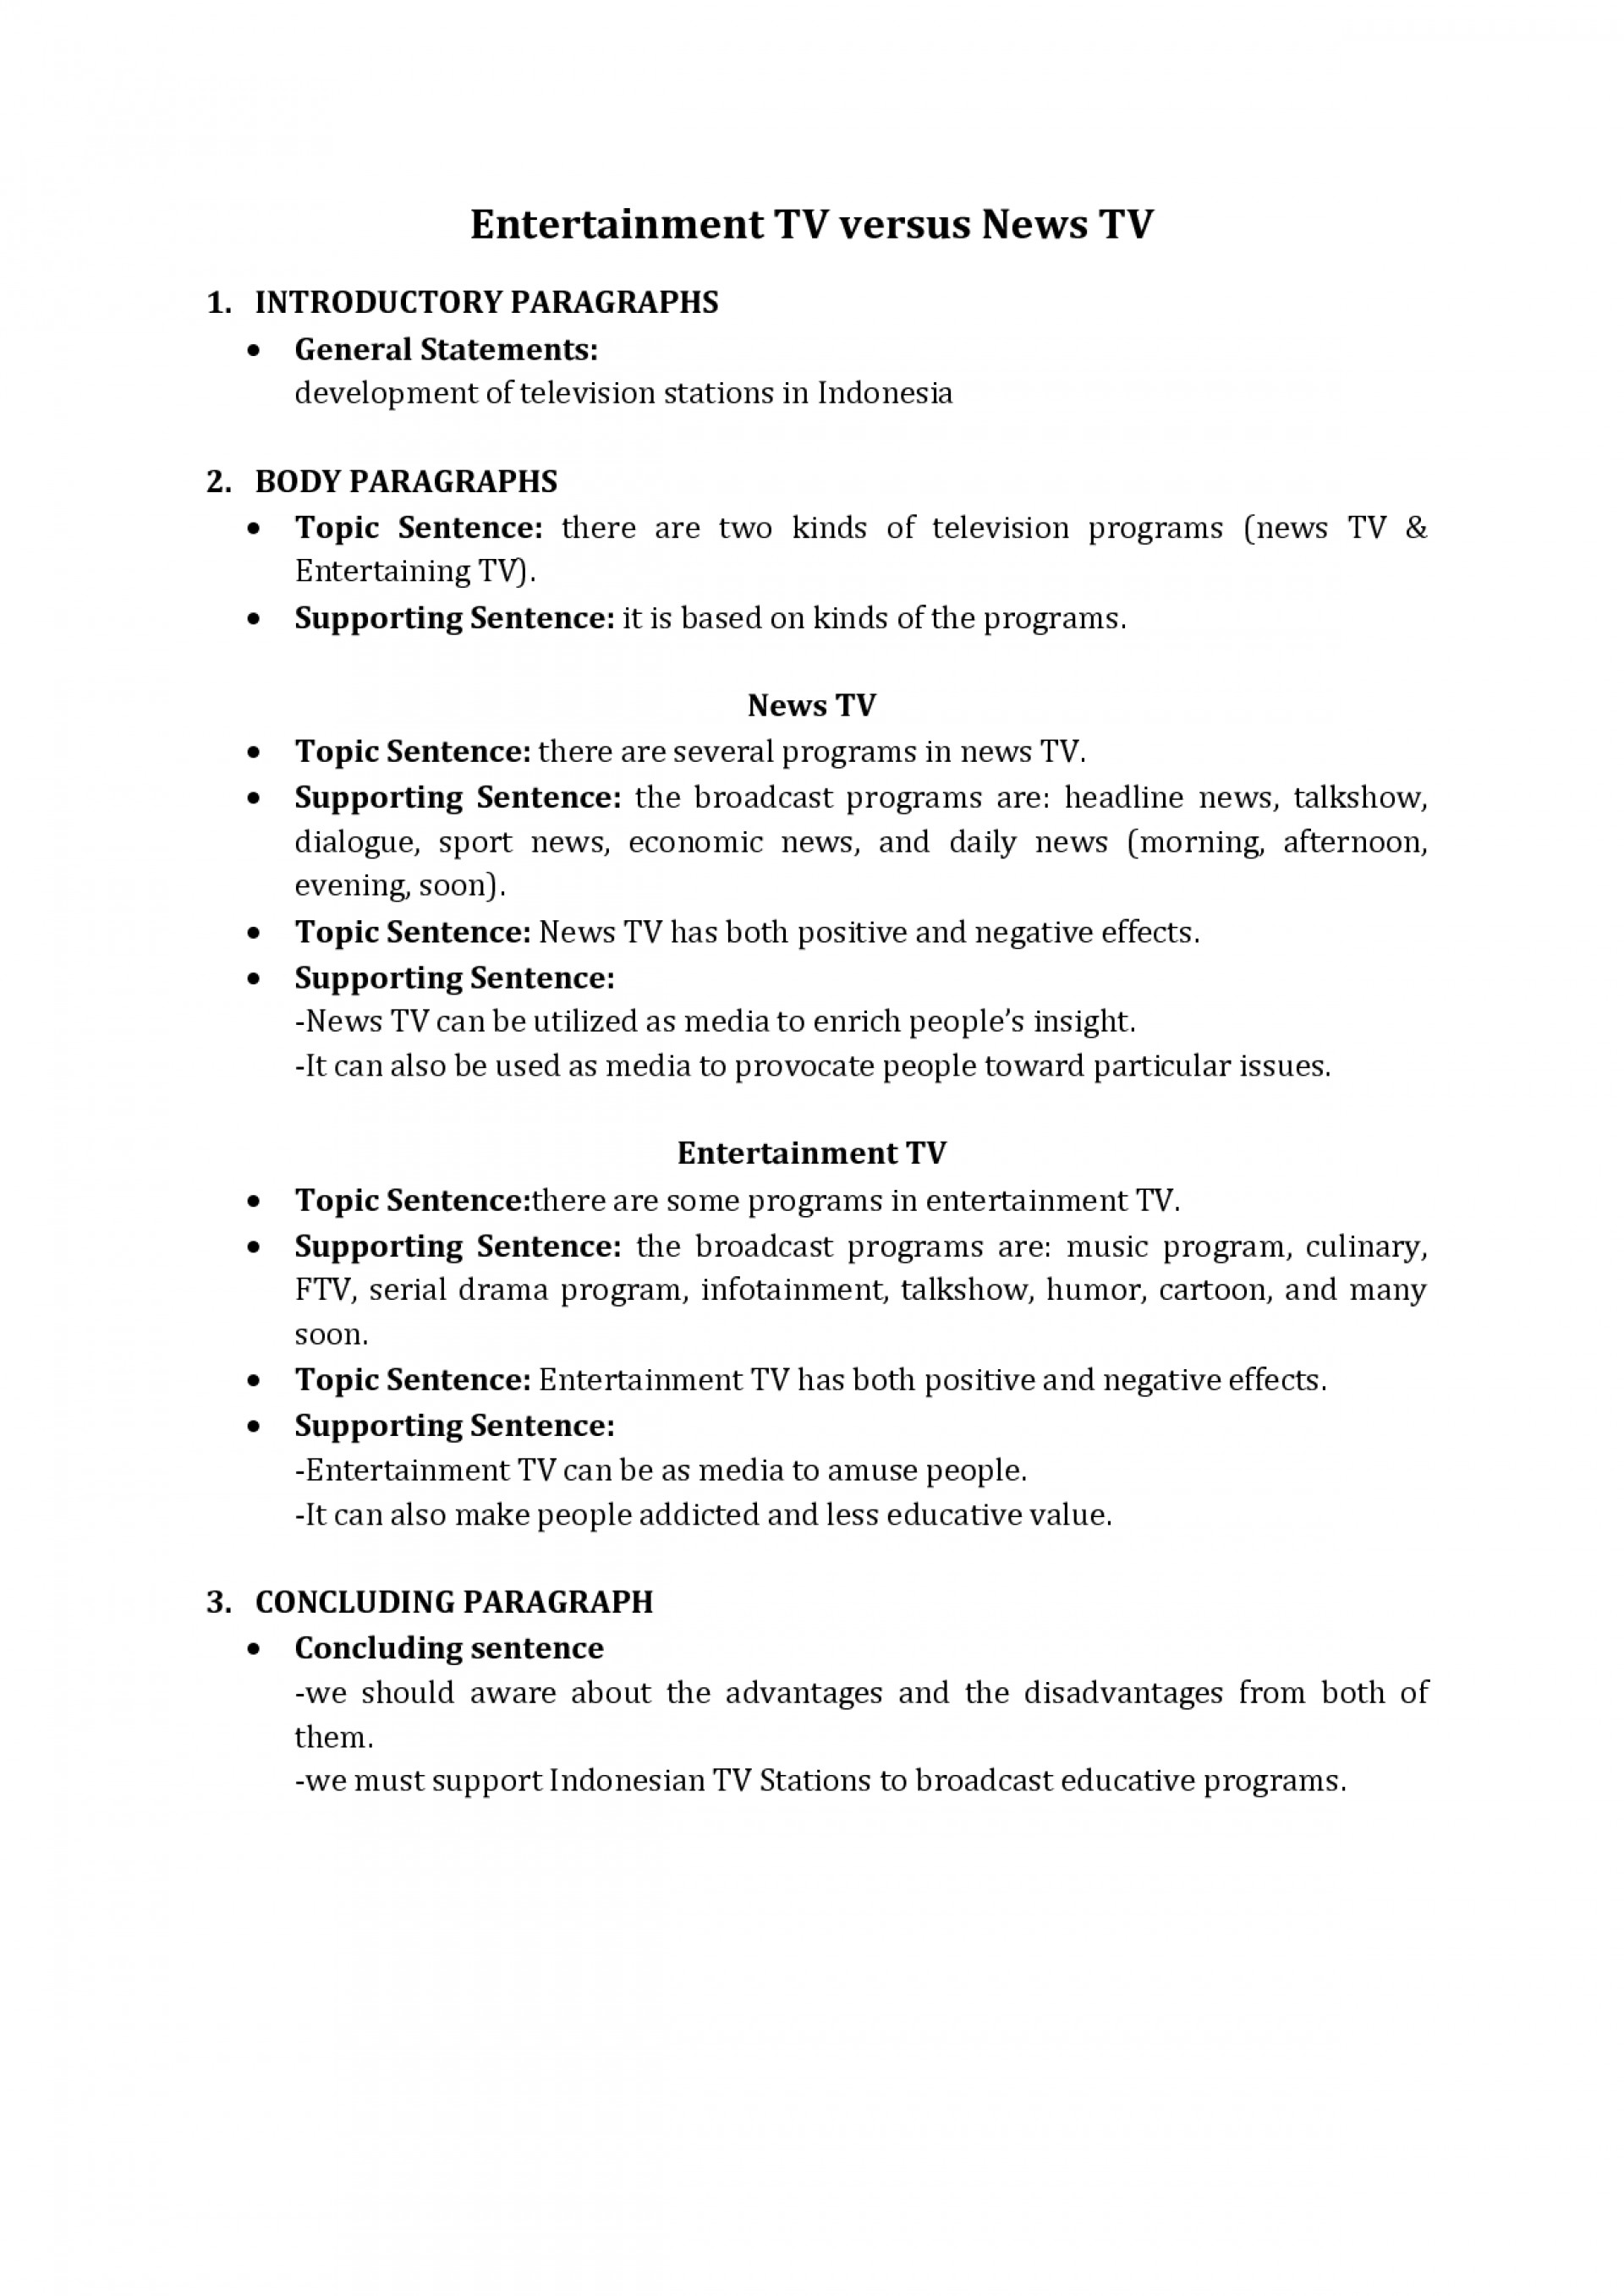 005 Fbunmxinib How To Write An Essay Outline Excellent For University A Research Paper Mla Format Pdf 1920